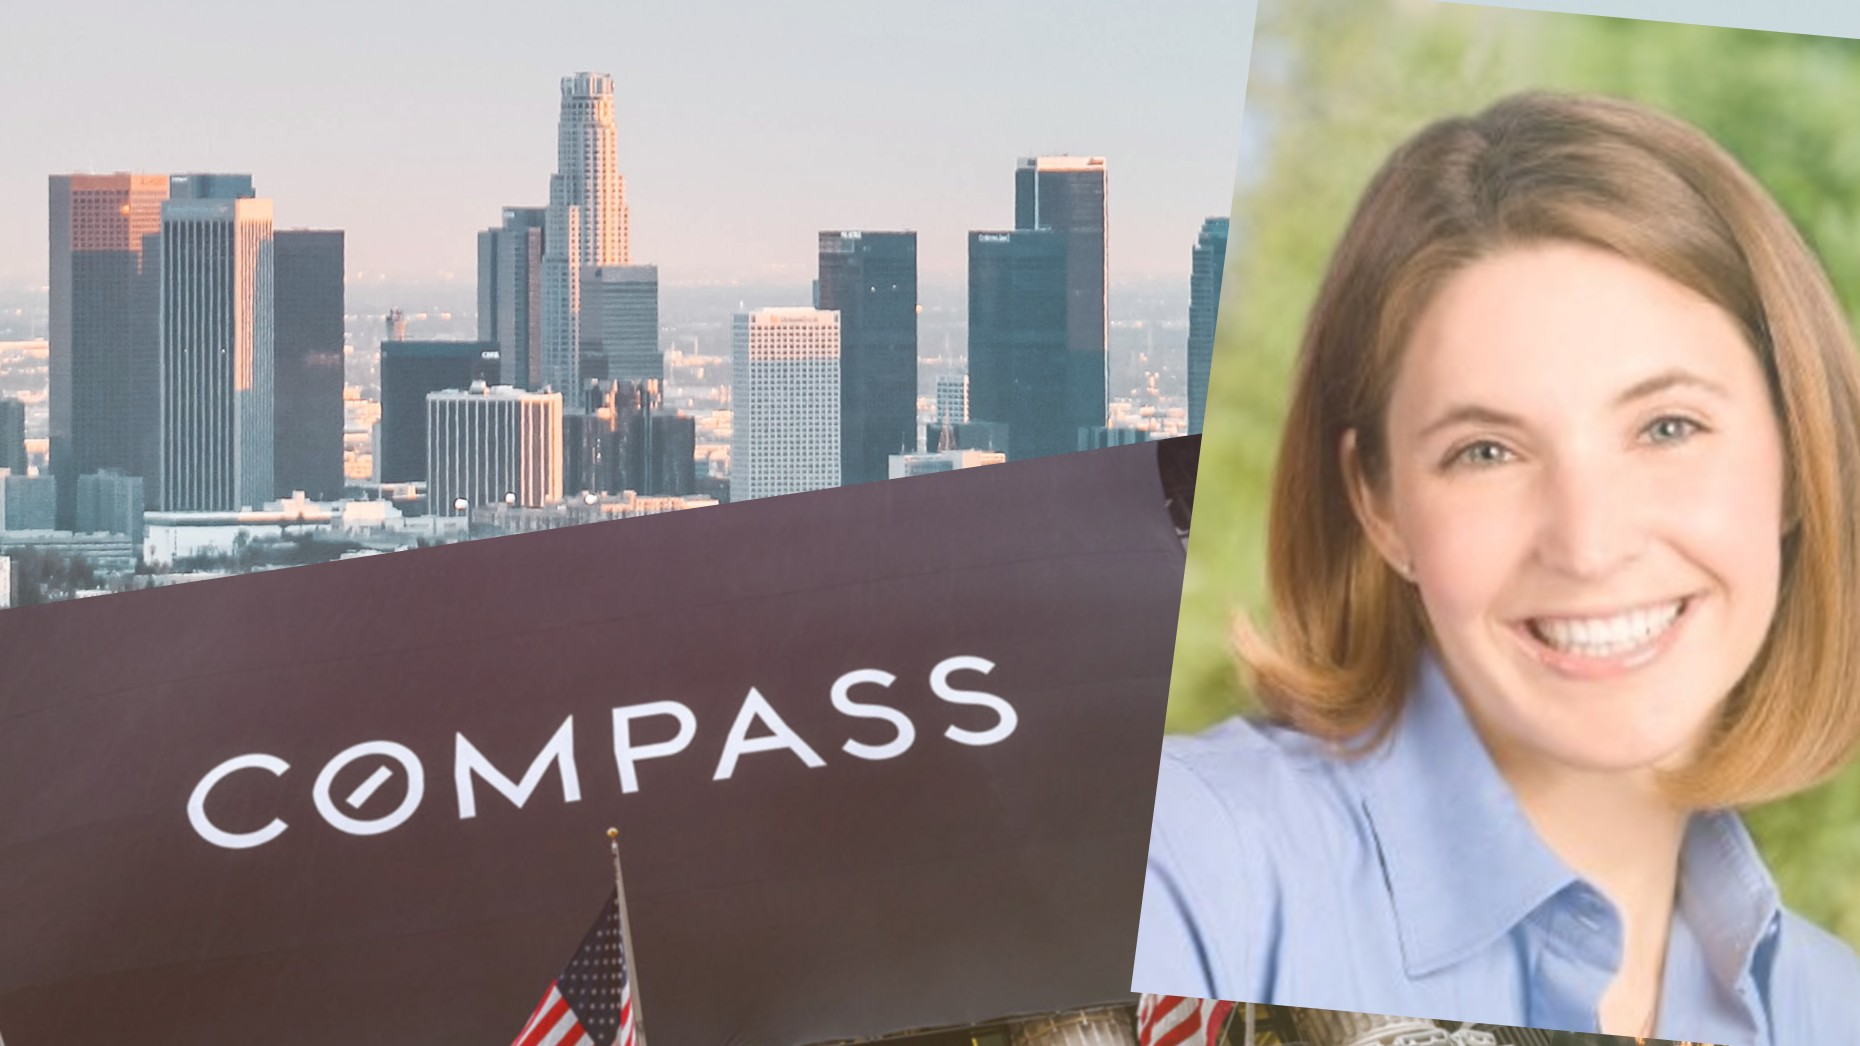 The Agency files lawsuit against Compass